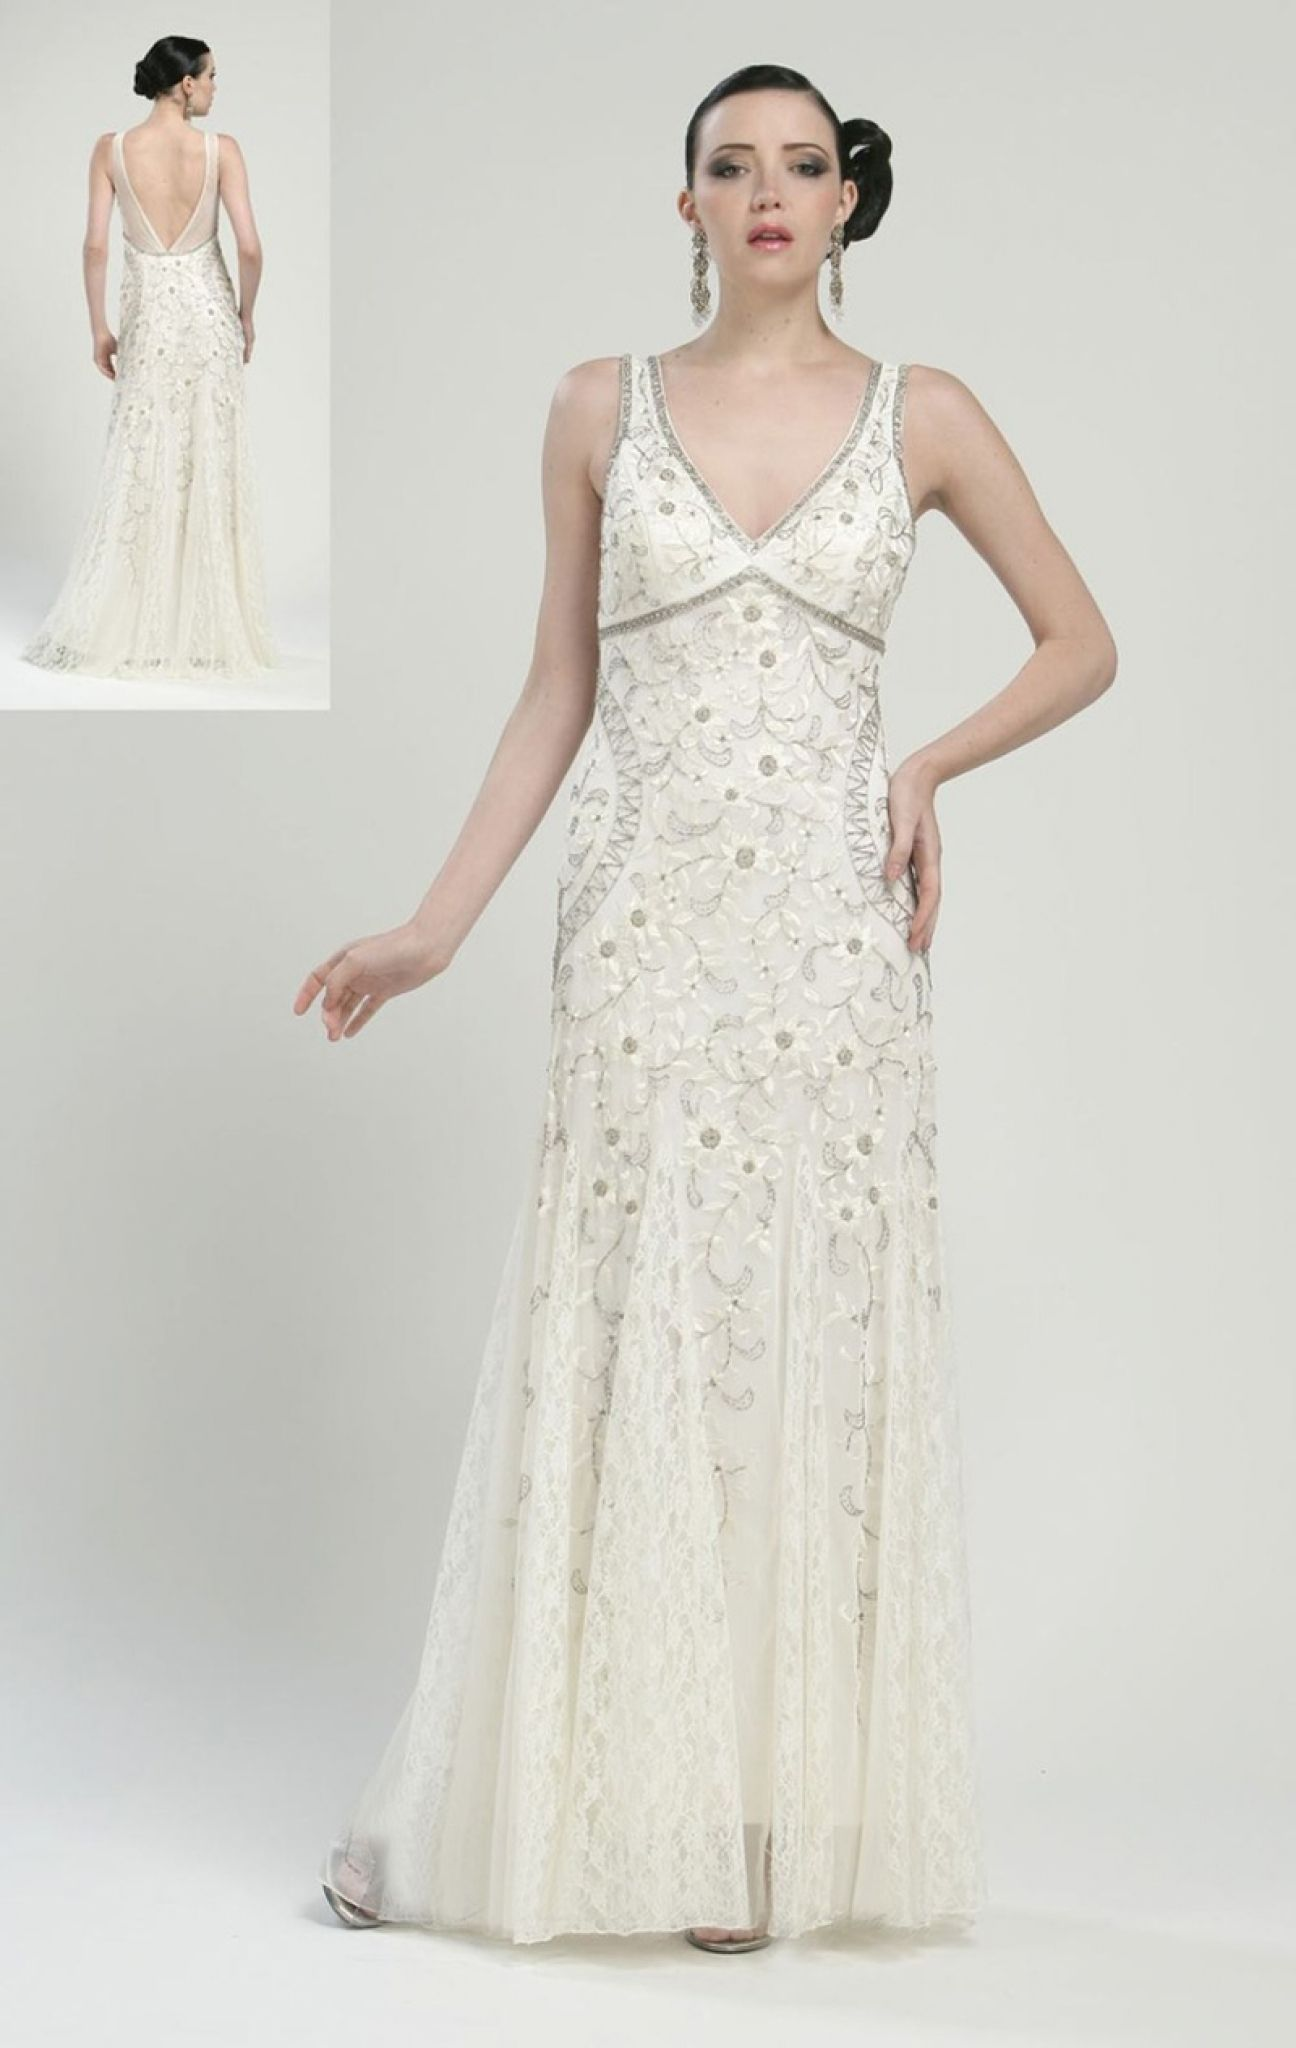 sue wong wedding dress - country dresses for weddings Check more at ...